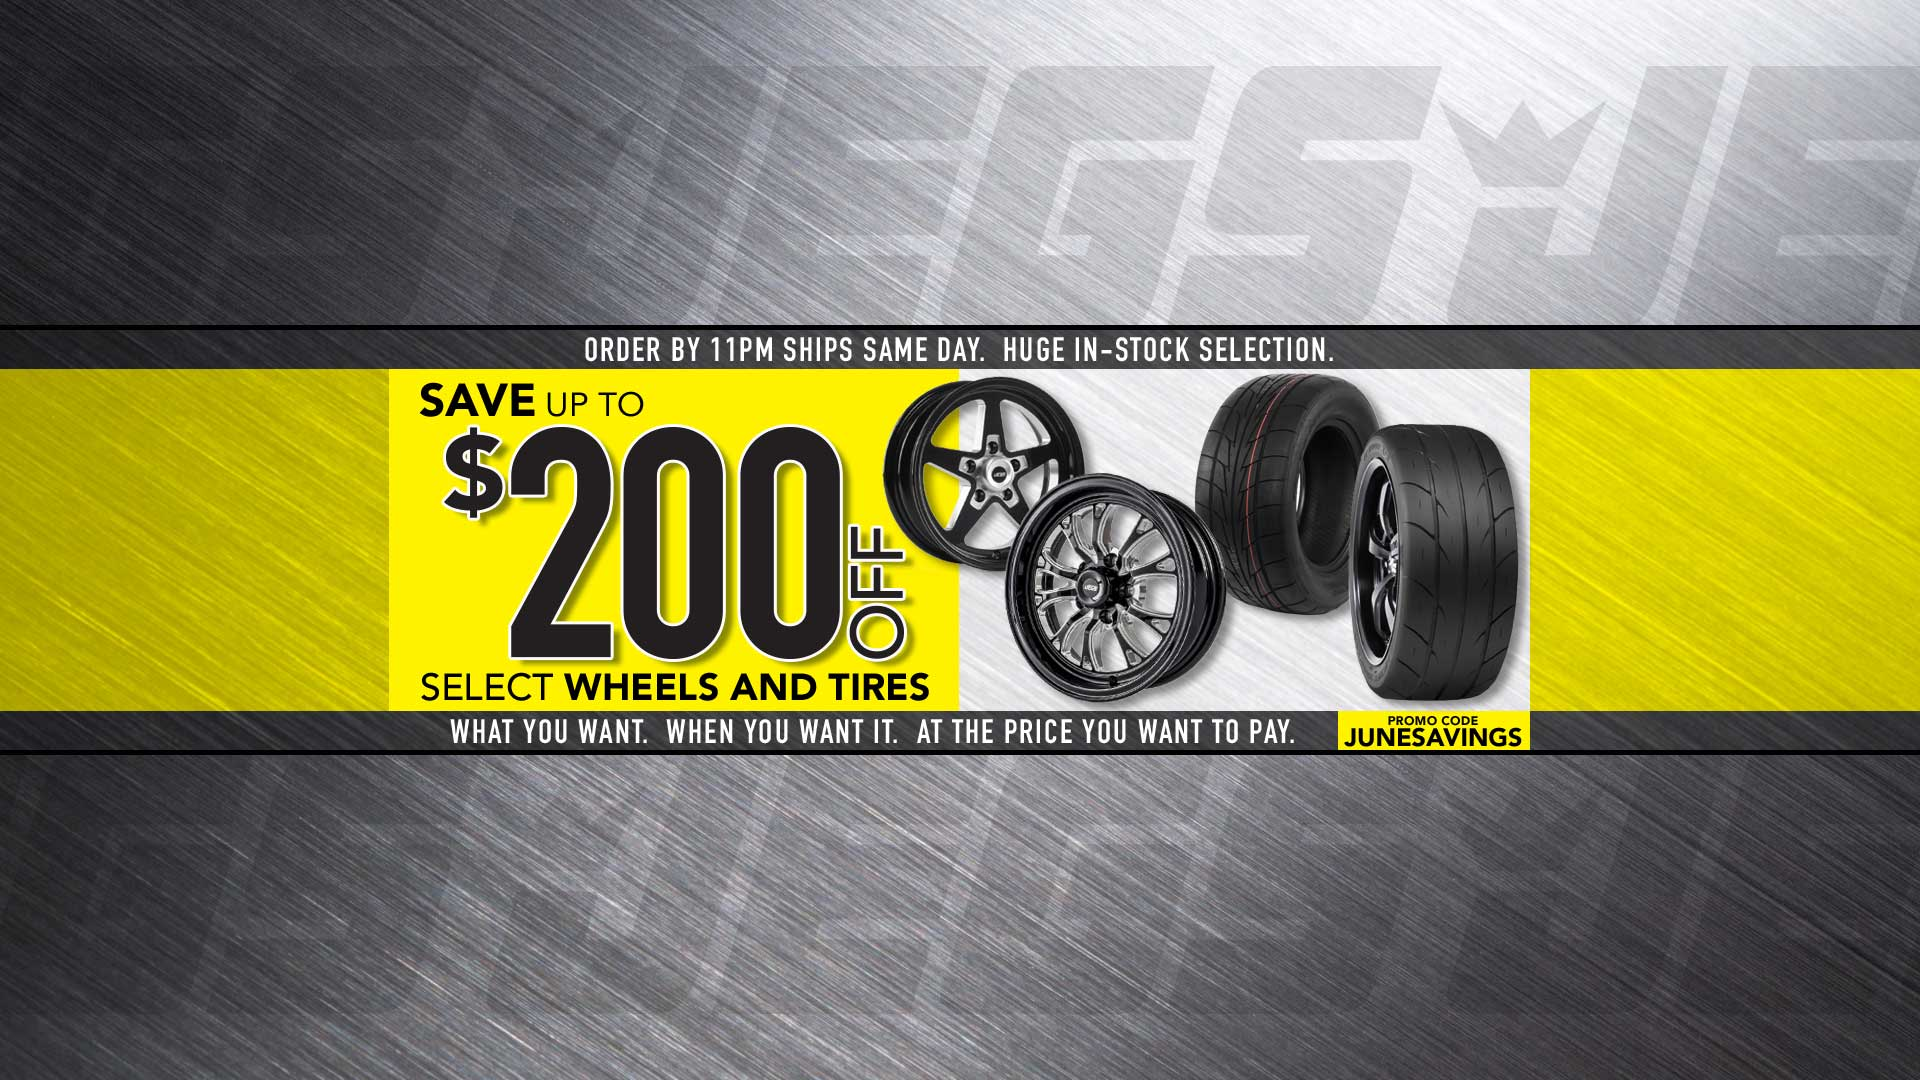 Wheels $25 off $300, $50 off $750, $100 off $1,200, $200 off $2,500 – Use Promo Code JUNESAVINGS